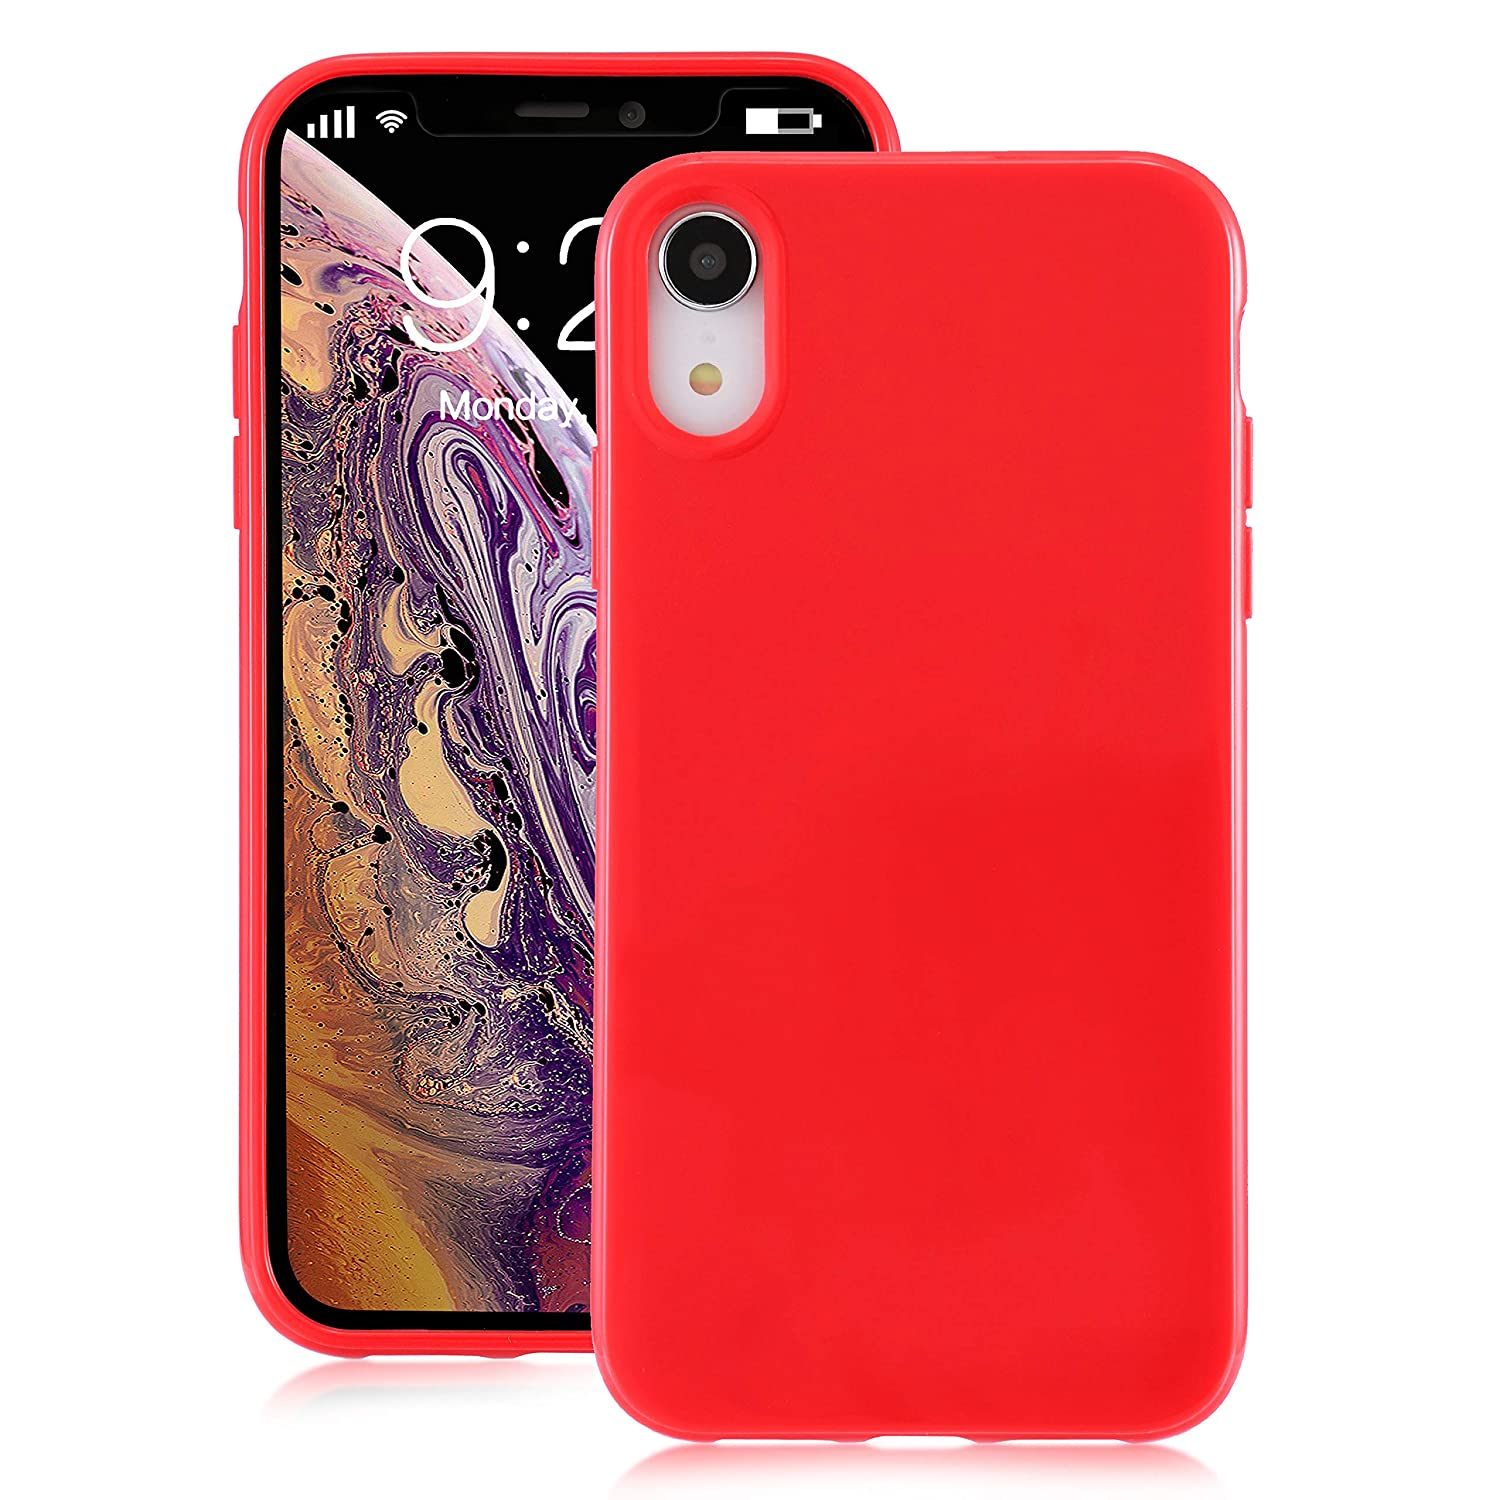 for iPhone XR Red Case, technext020 Shockproof Ultra Slim Fit Silicone  iPhone 10R Cover TPU Soft Gel Rubber Cover Shock Resistance Protective Back